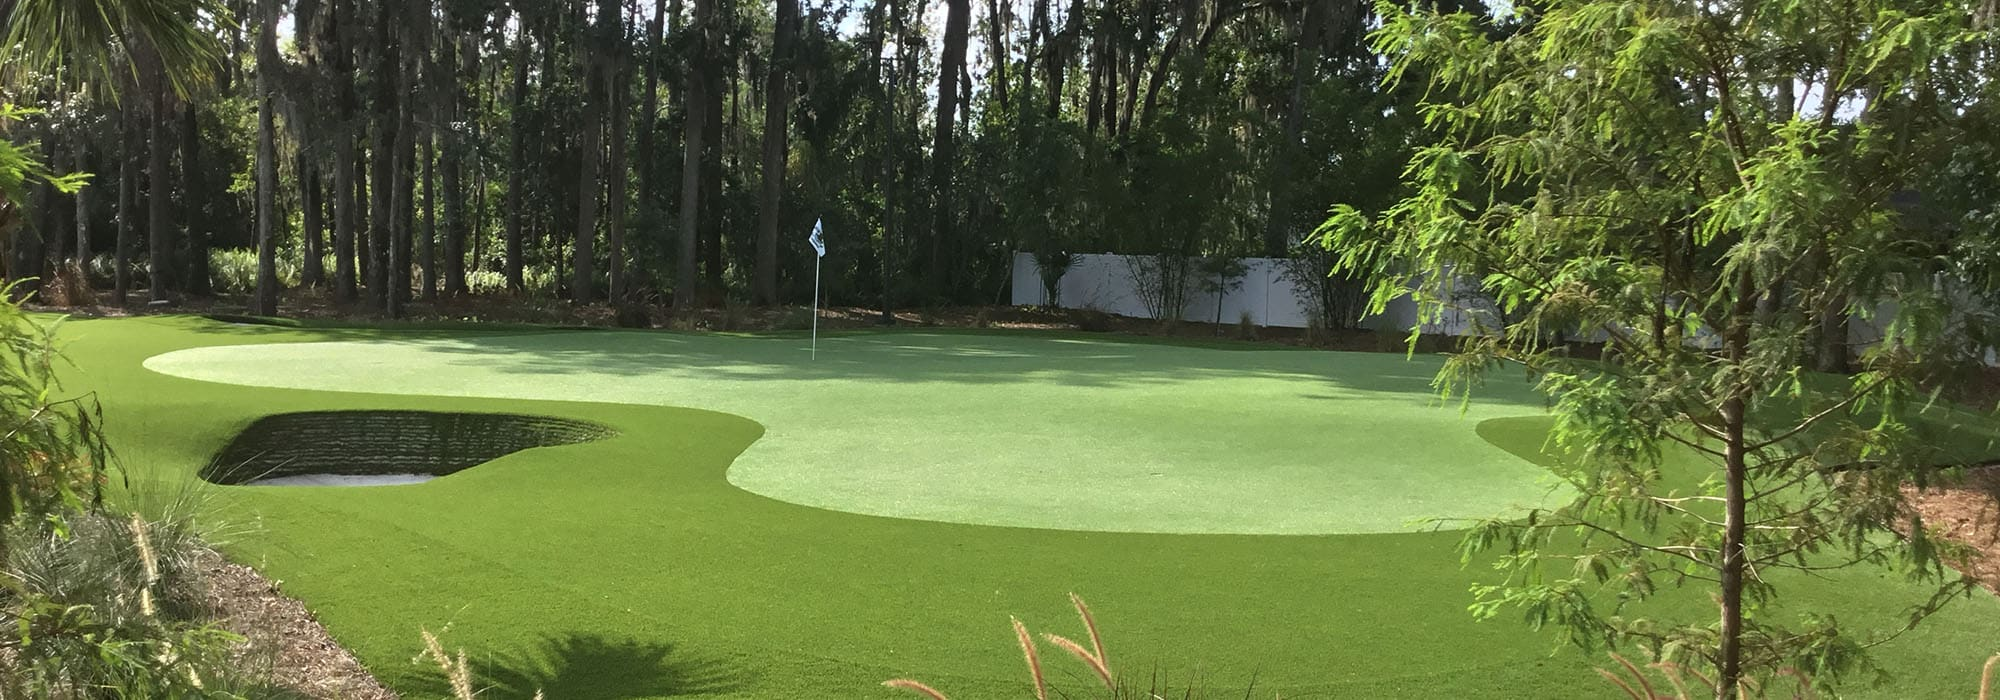 synthetic turf private putting green